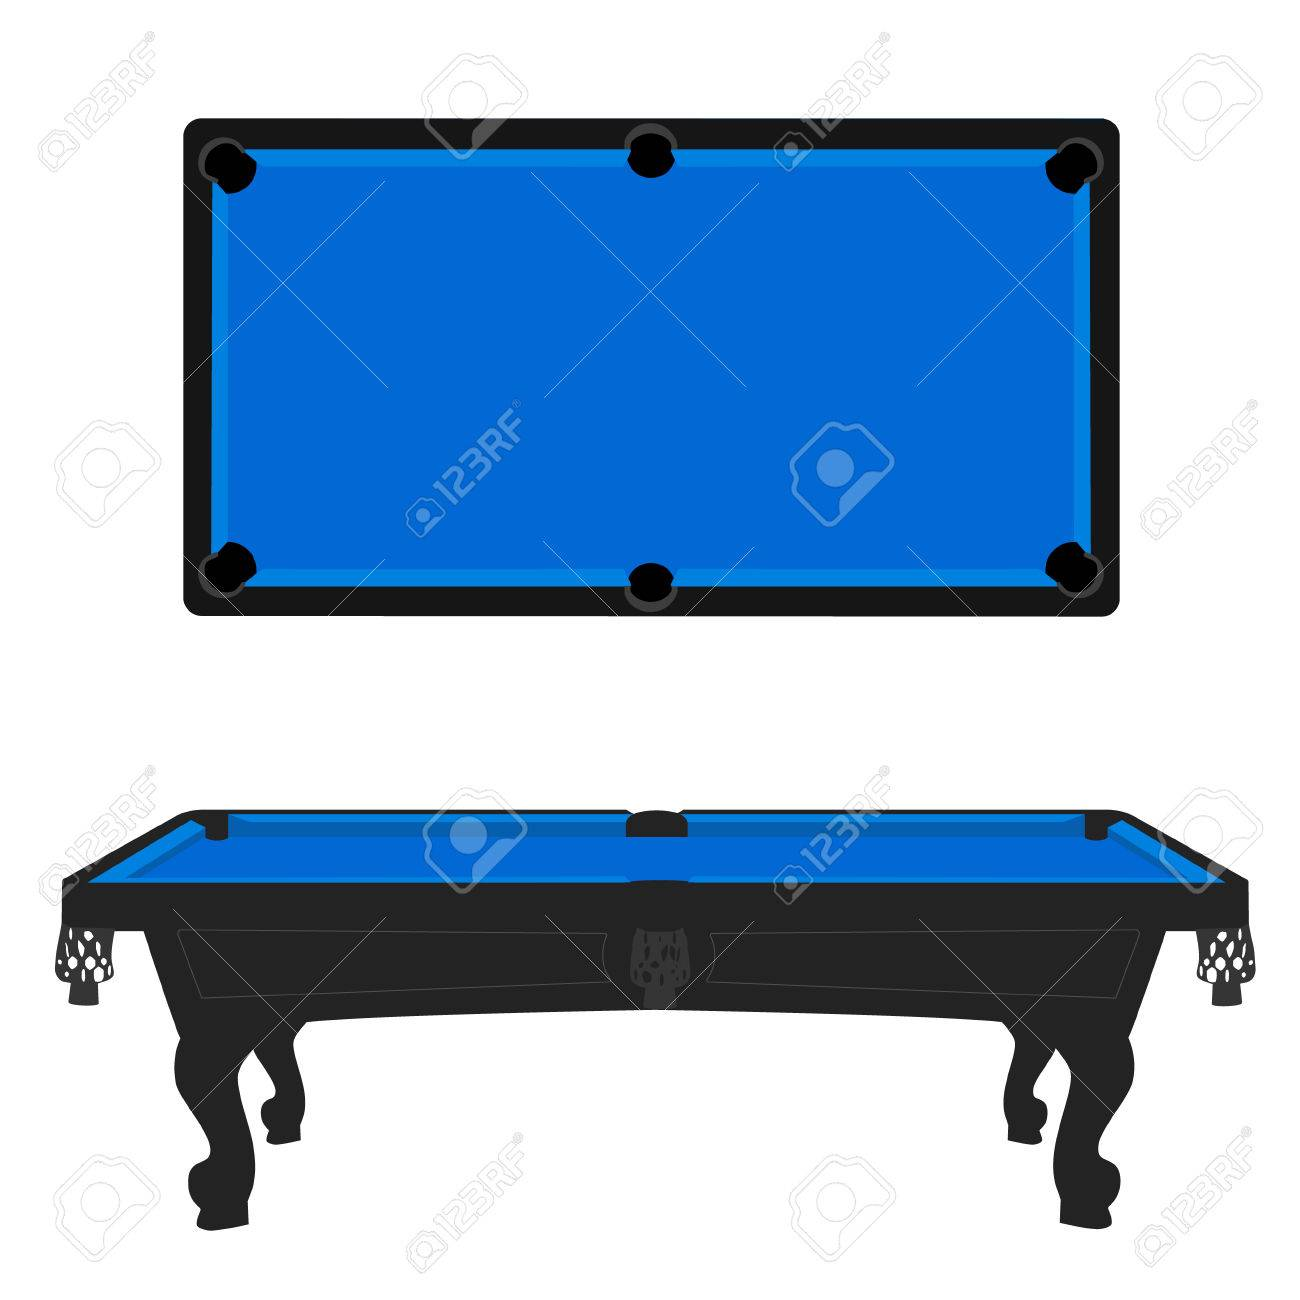 Gentil Vector   Vector Illustration Retro, Vintage Pool Table With Blue Cloth Top  And Side View. Empty Billiard Table